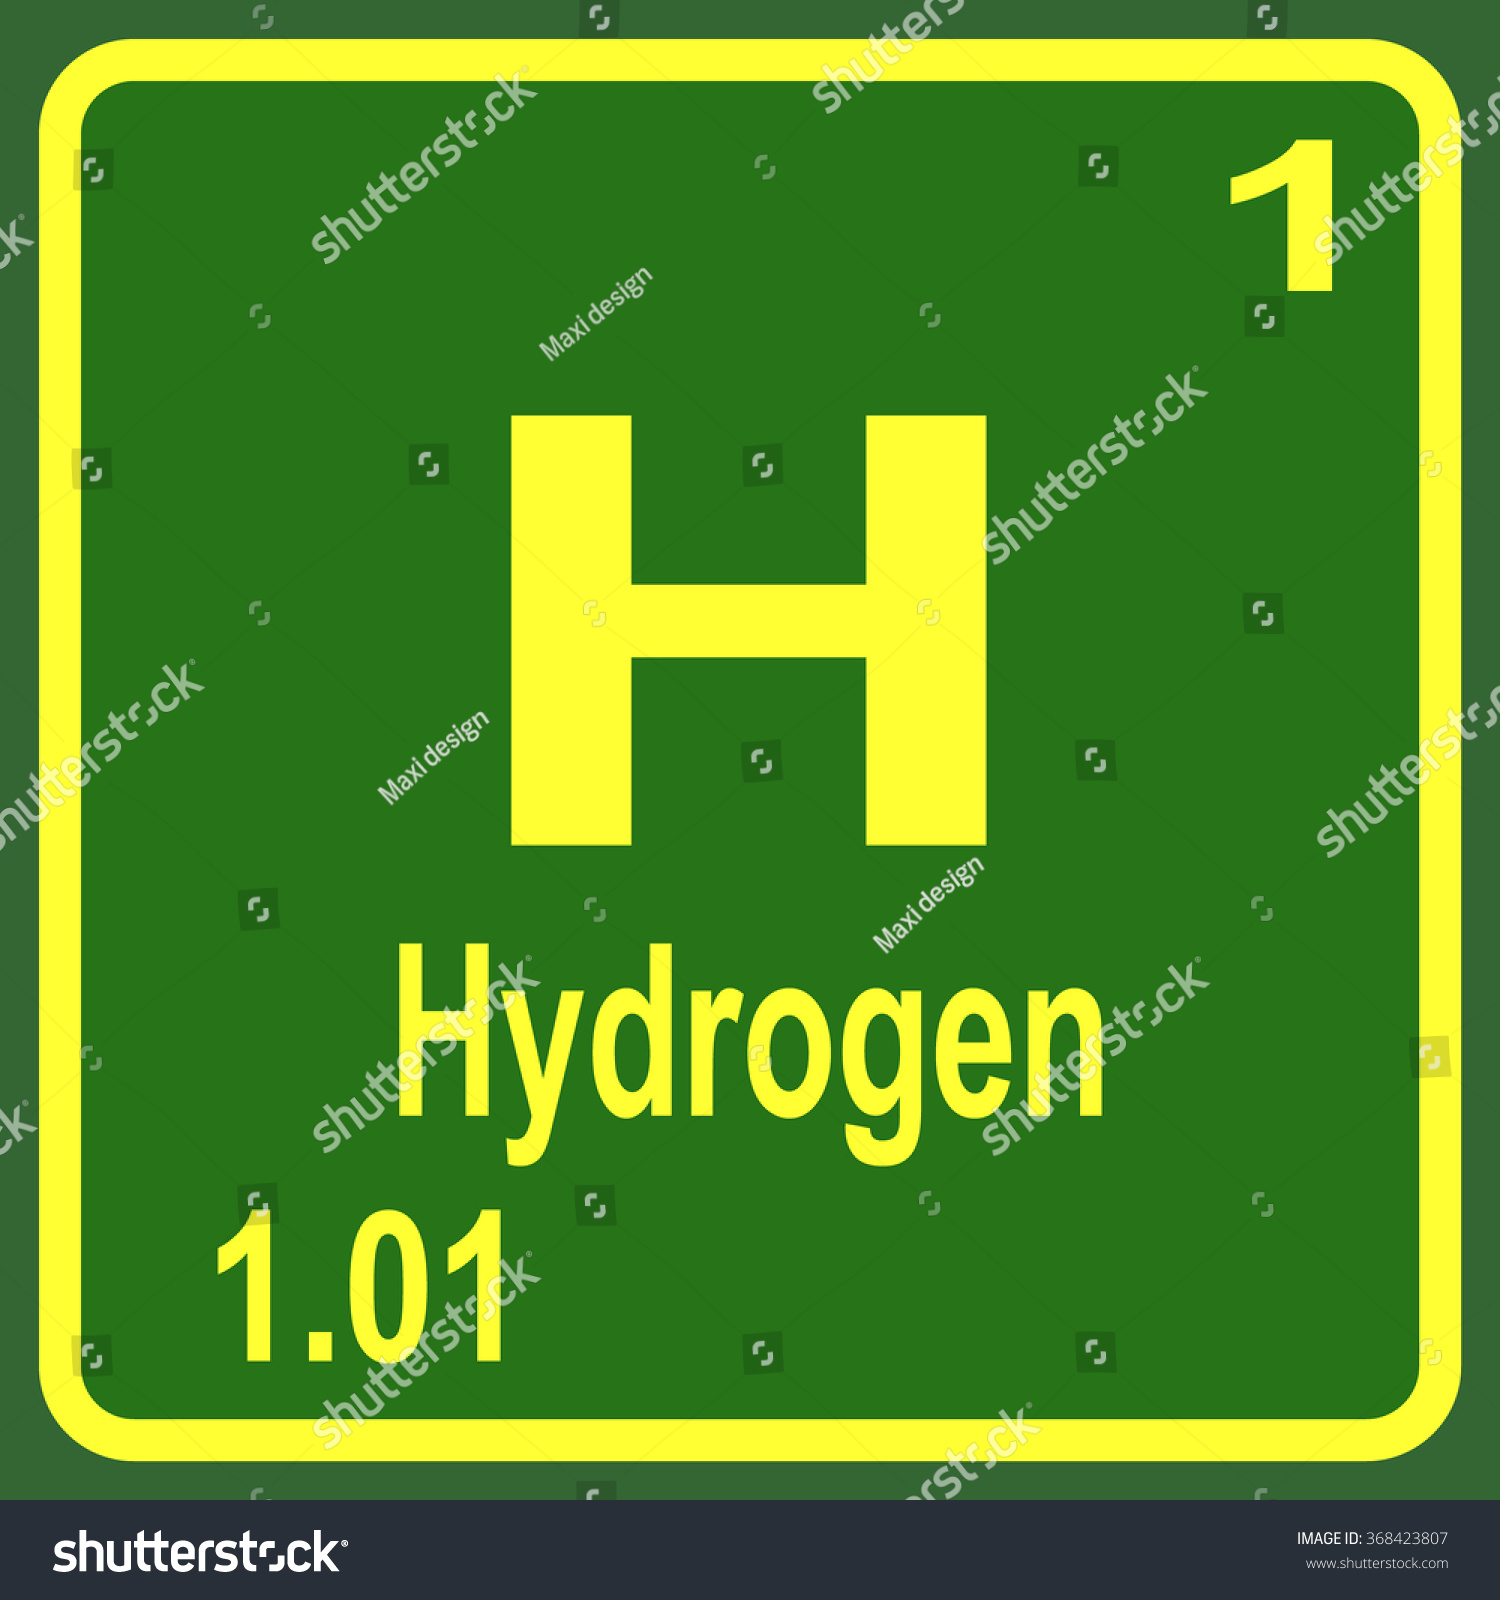 Periodic table elements hydrogen stock vector 368423807 shutterstock periodic table of elements hydrogen gamestrikefo Choice Image